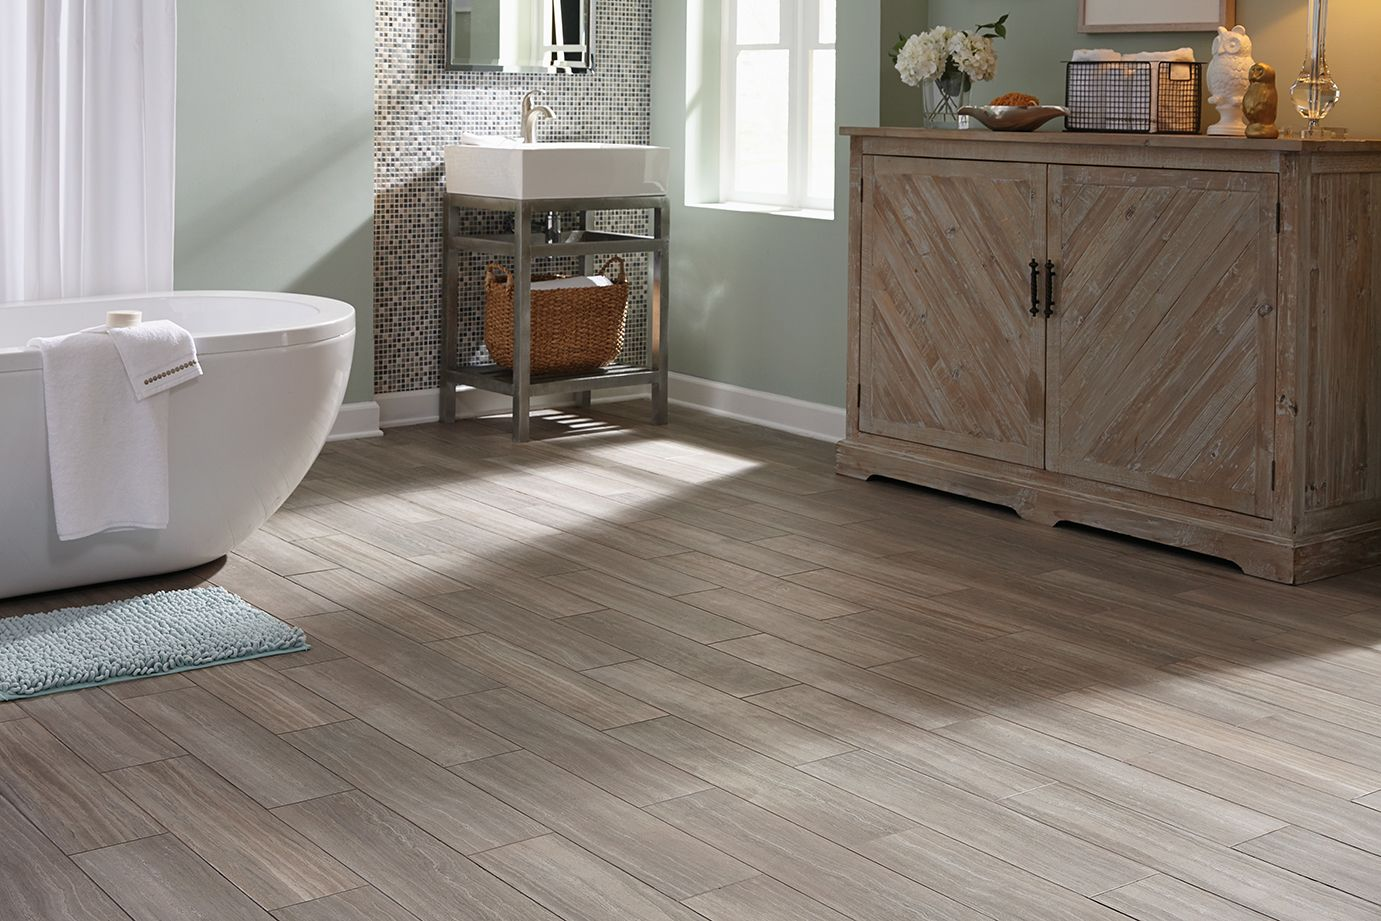 STAINMASTER® 6in x 24in Groutable Chateau/Light Gray